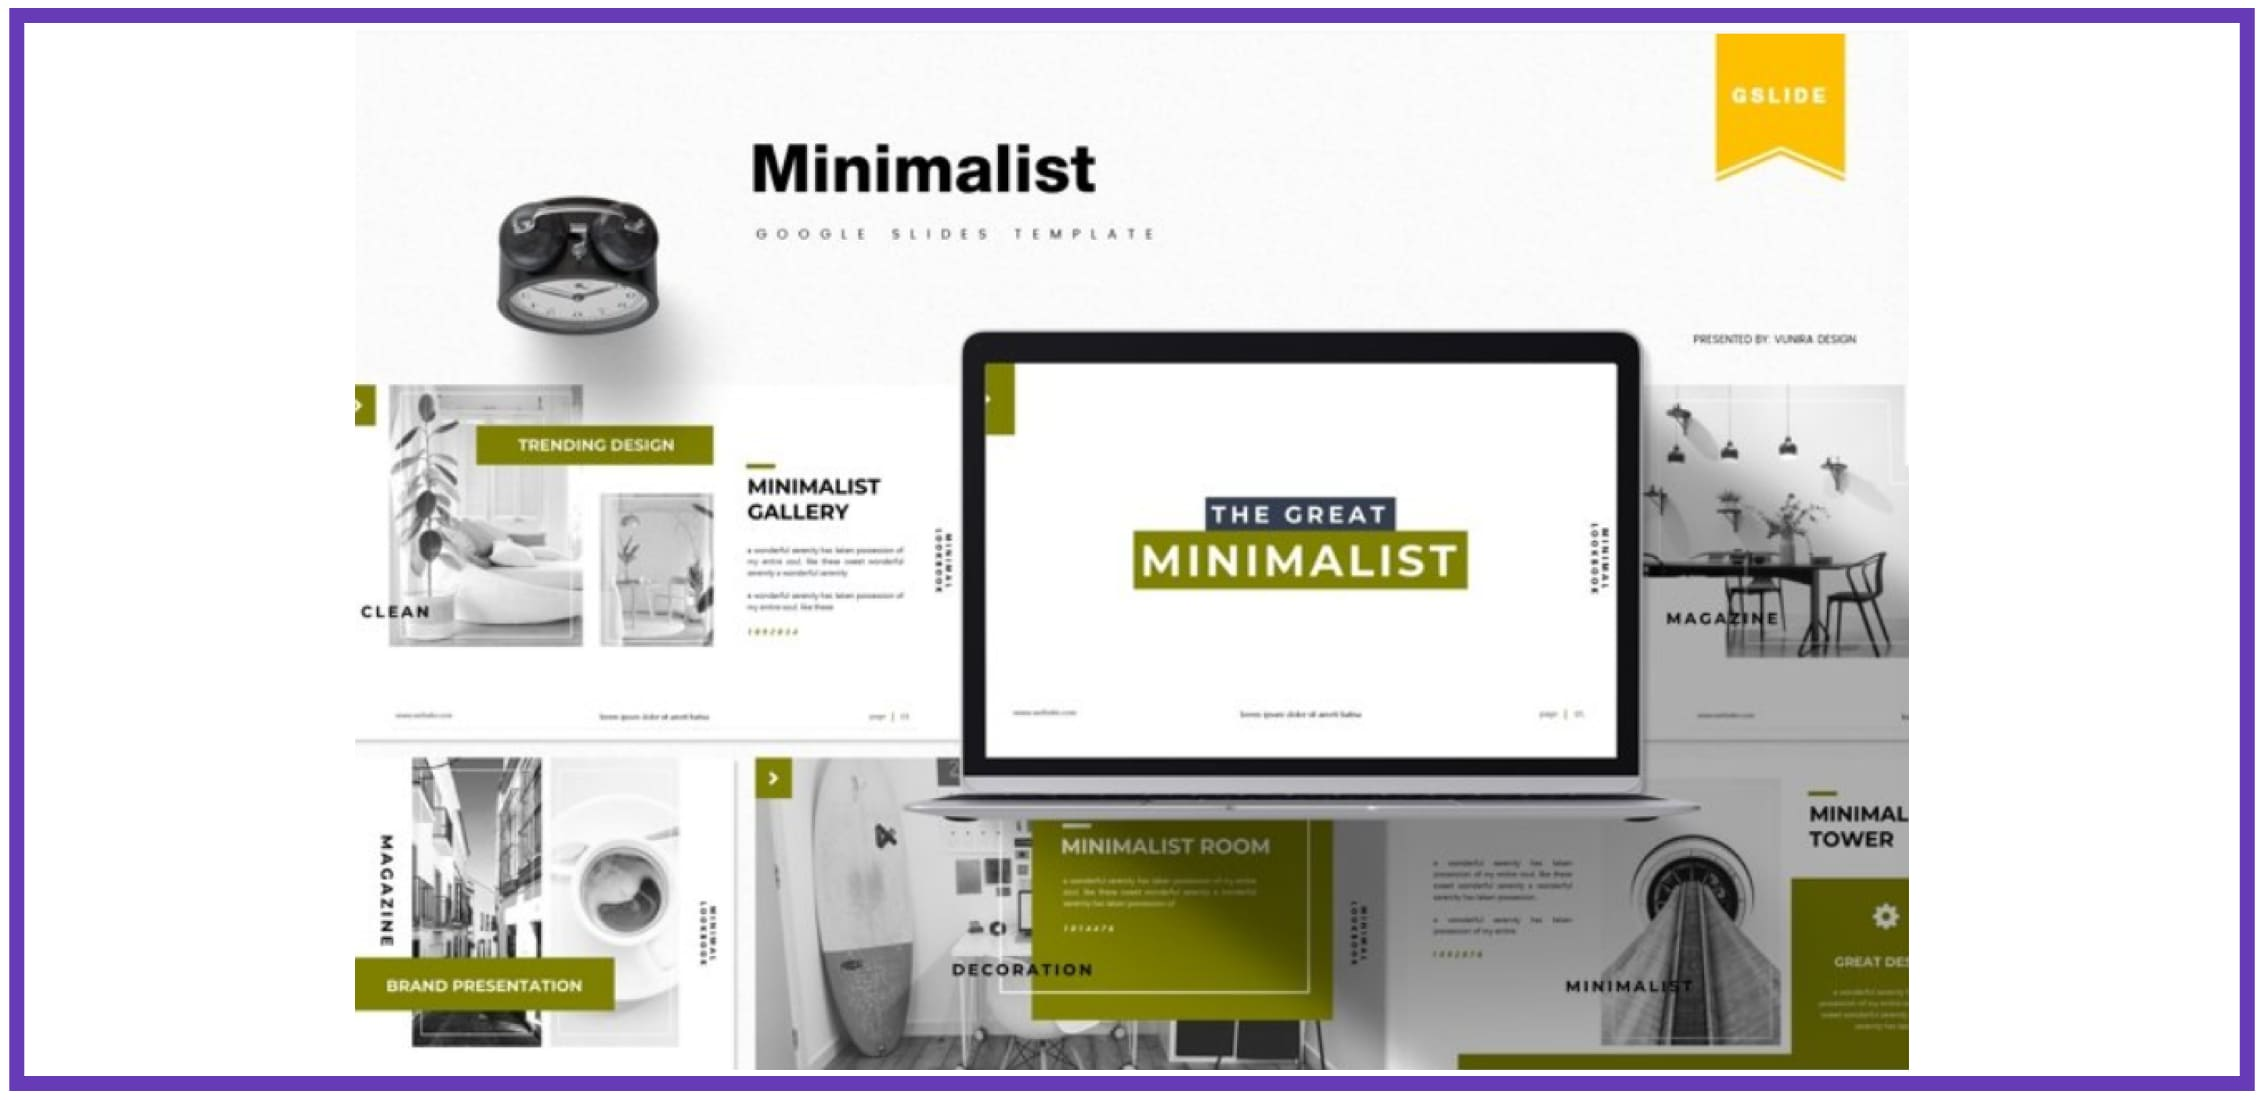 60+ Outstanding Simple PowerPoint Templates 2021: Free & Premium - simple powerpoint templates 243